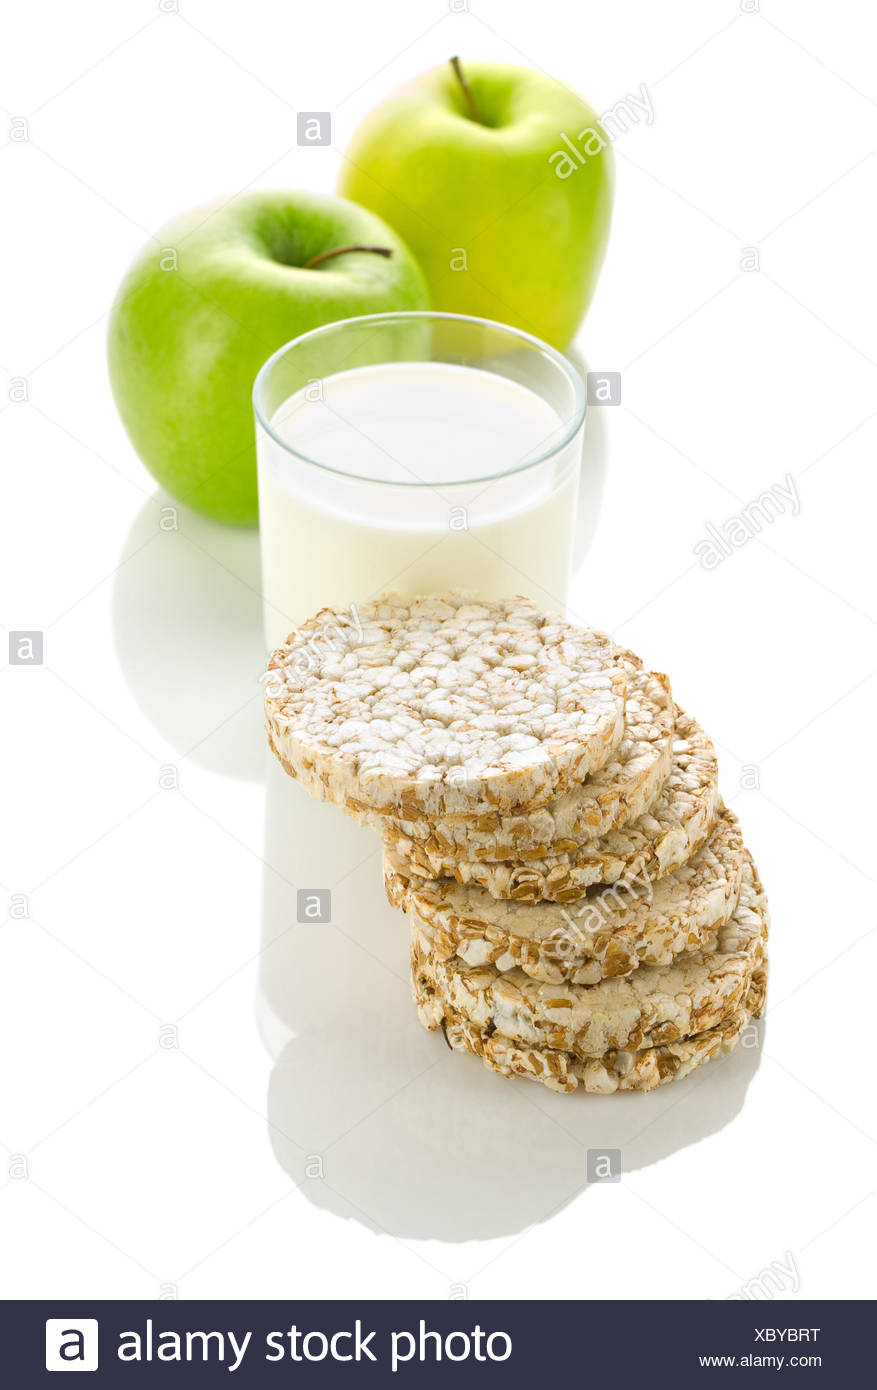 composition of dietary food - Stock Image